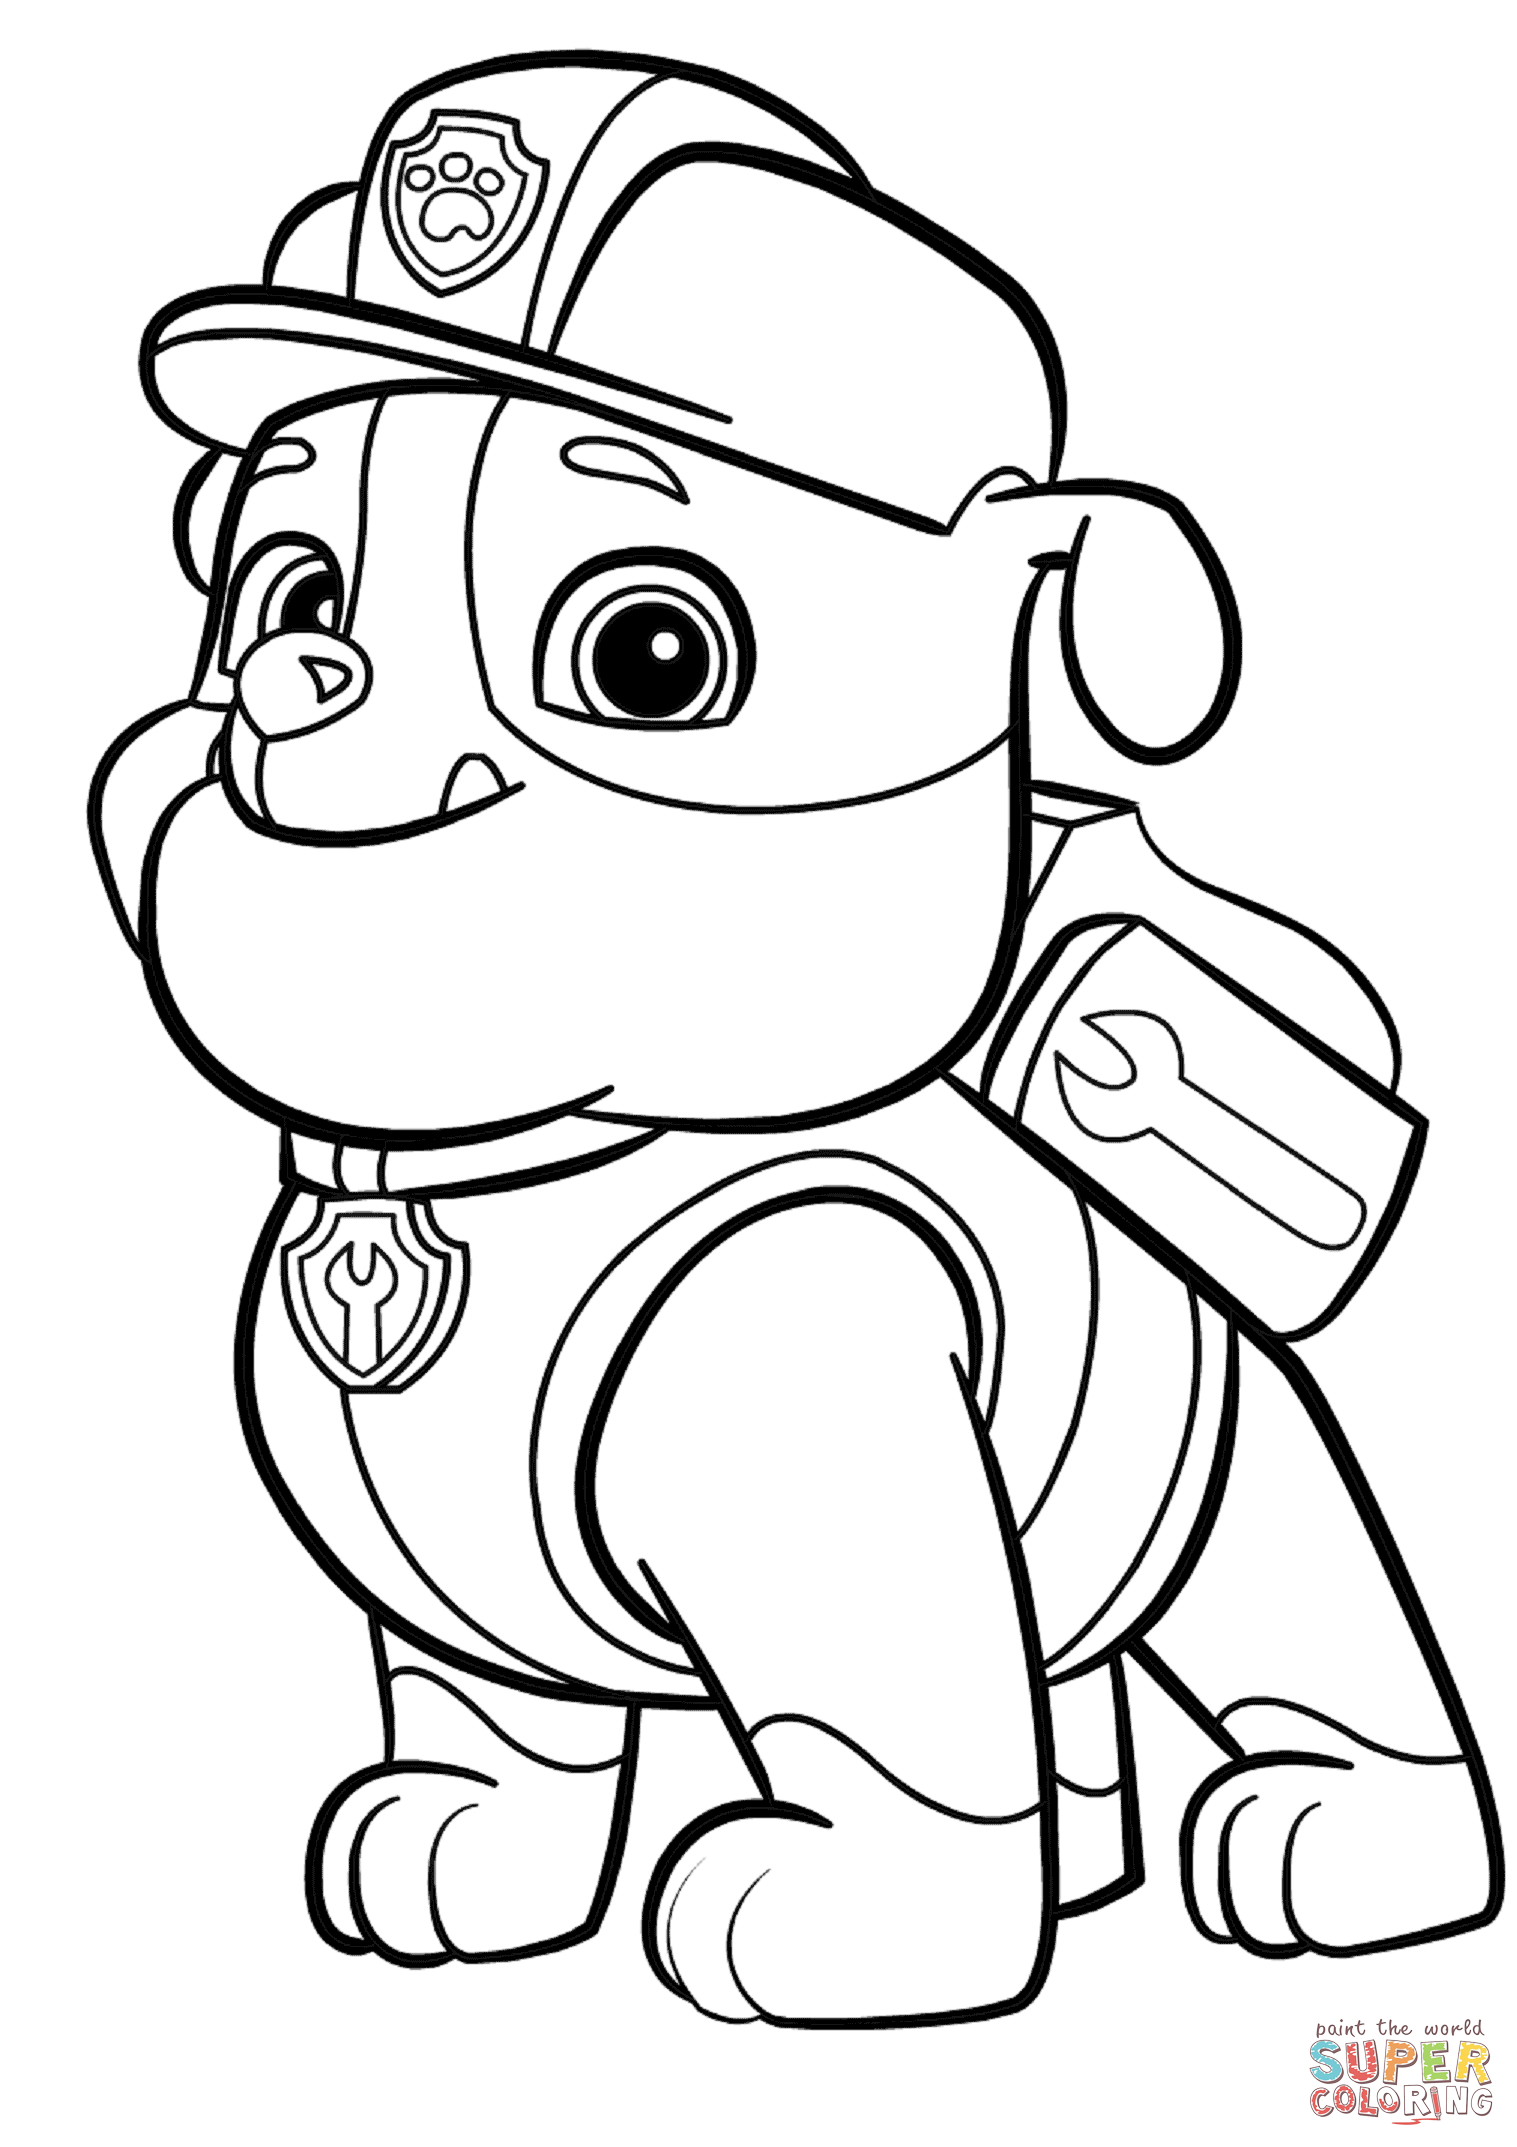 Paw patrol clipart black and white vector library stock Paw patrol clipart black and white 5 » Clipart Station vector library stock